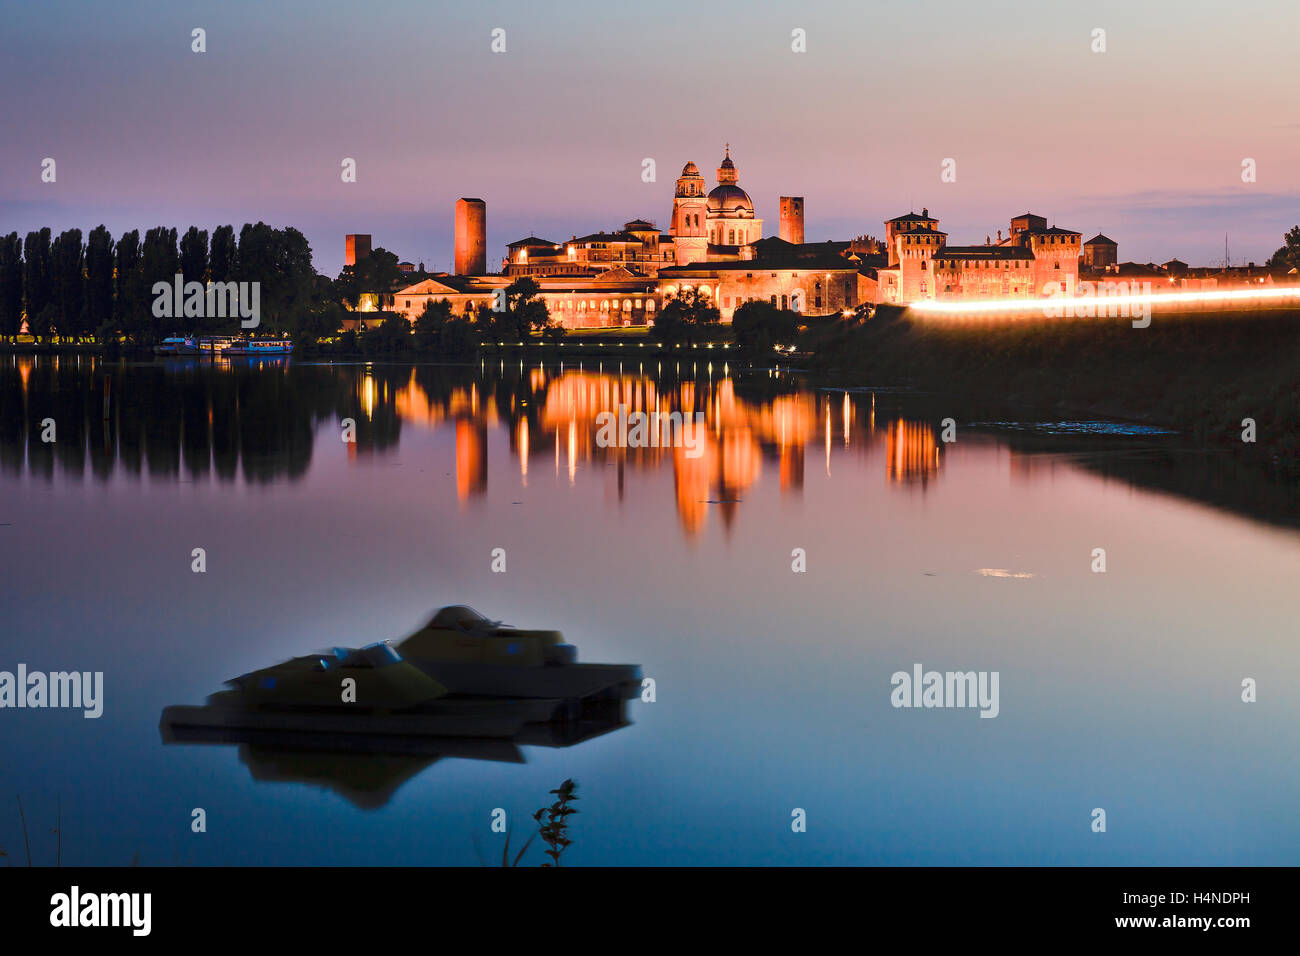 Bright Saint George castle - part of Duke's palace architectural ensemble in Mantua city of Italy at sunset - Stock Image